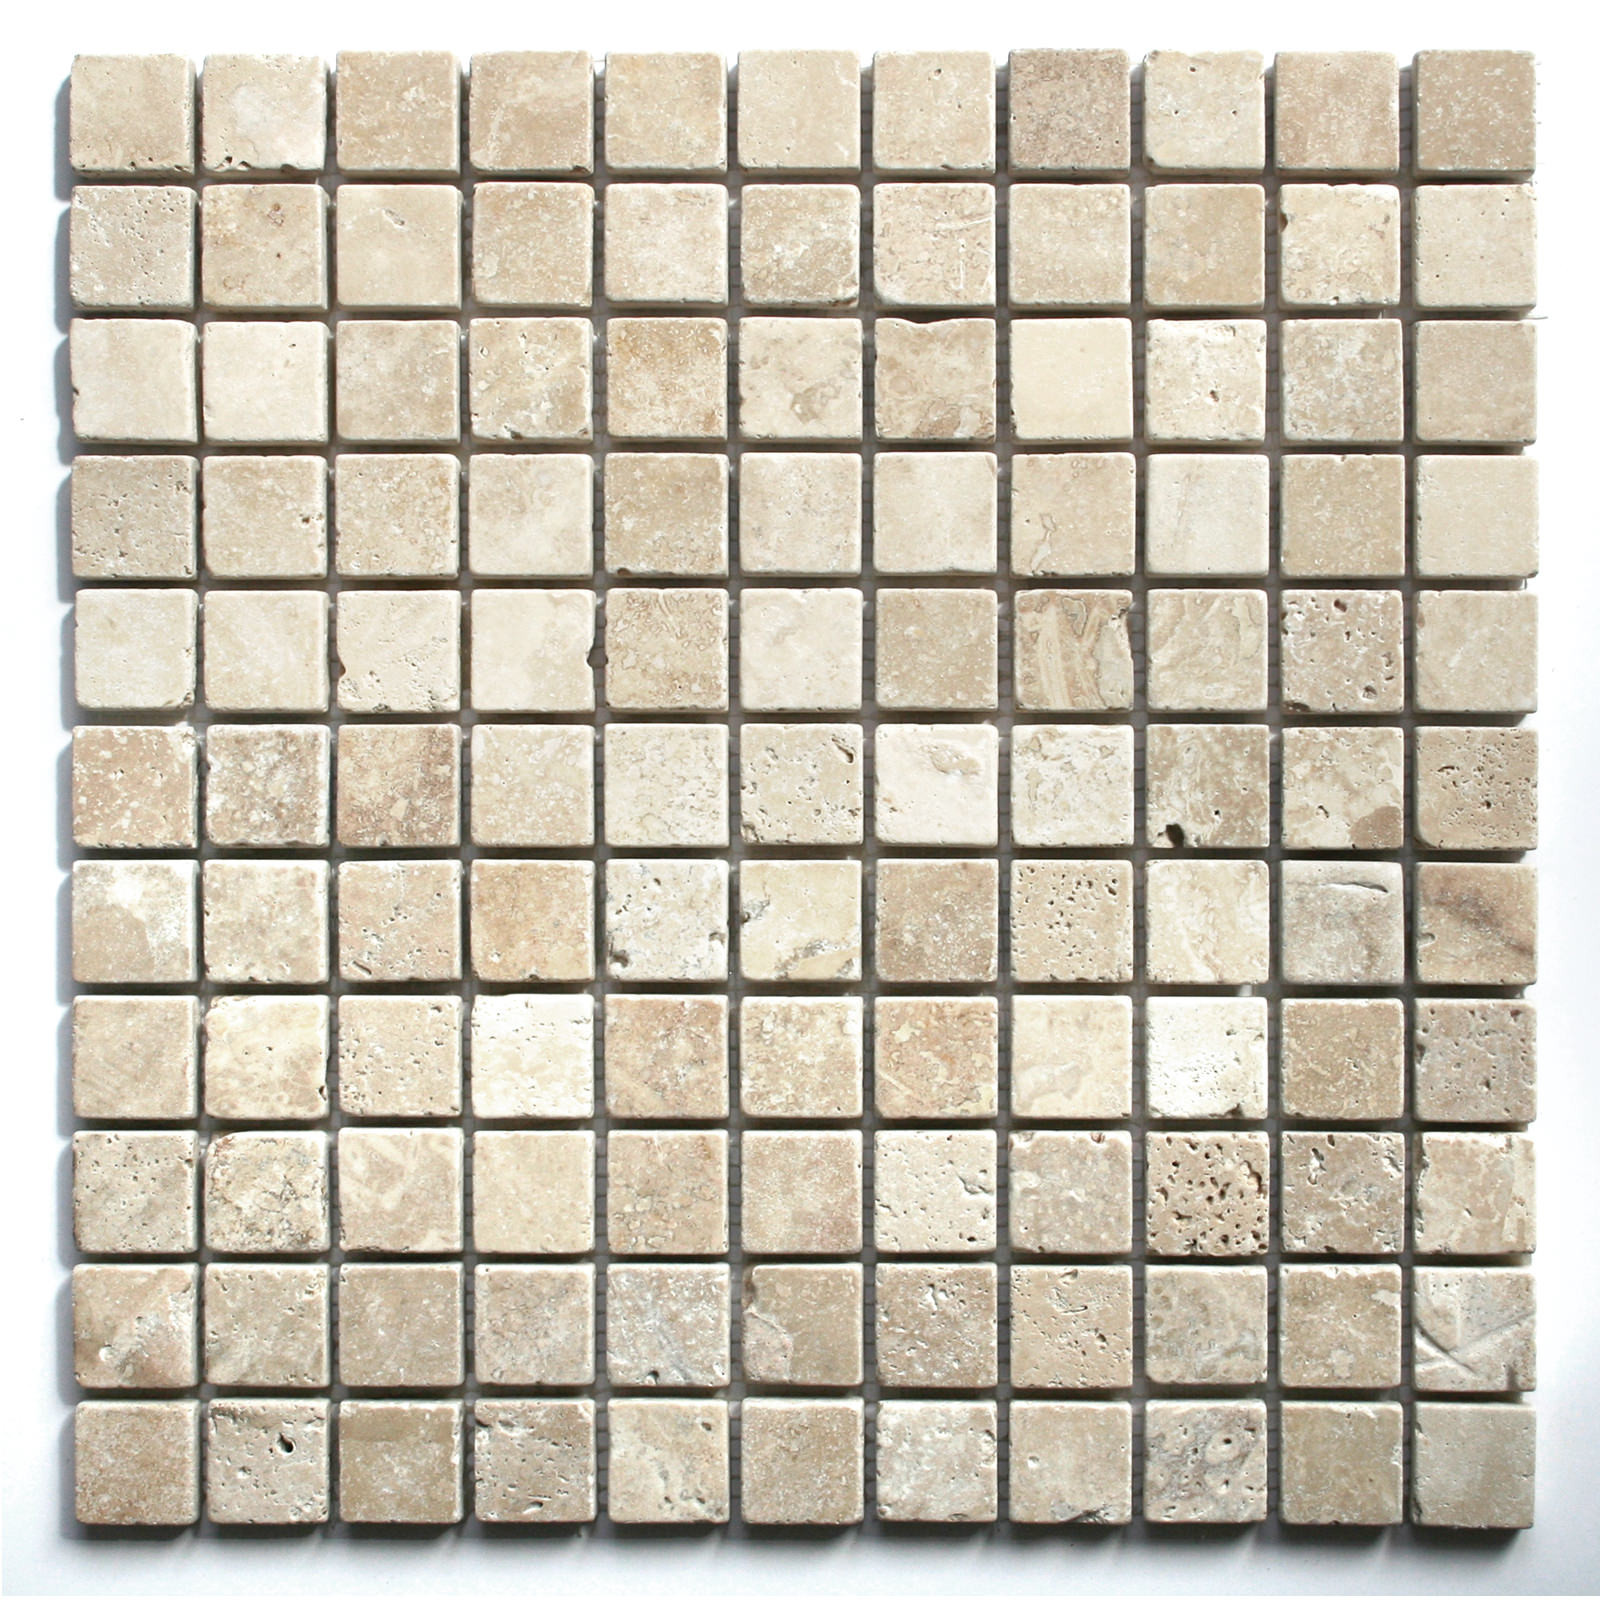 White travertine tumbled wall floor mosaic tile for Mosaic tile bathroom design